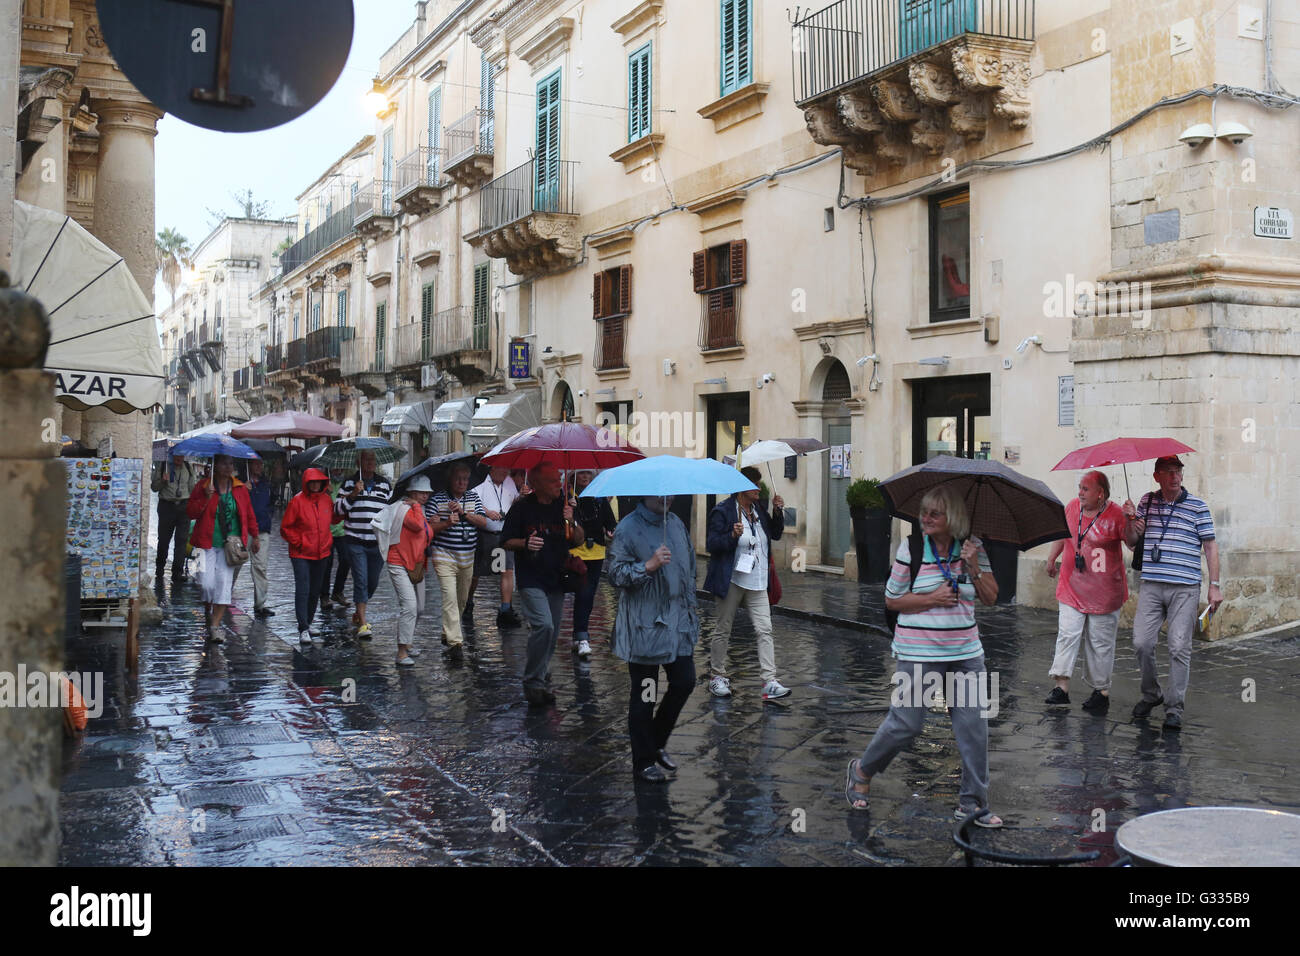 Noto, Italy, tour group makes when it rains a trip through the city - Stock Image